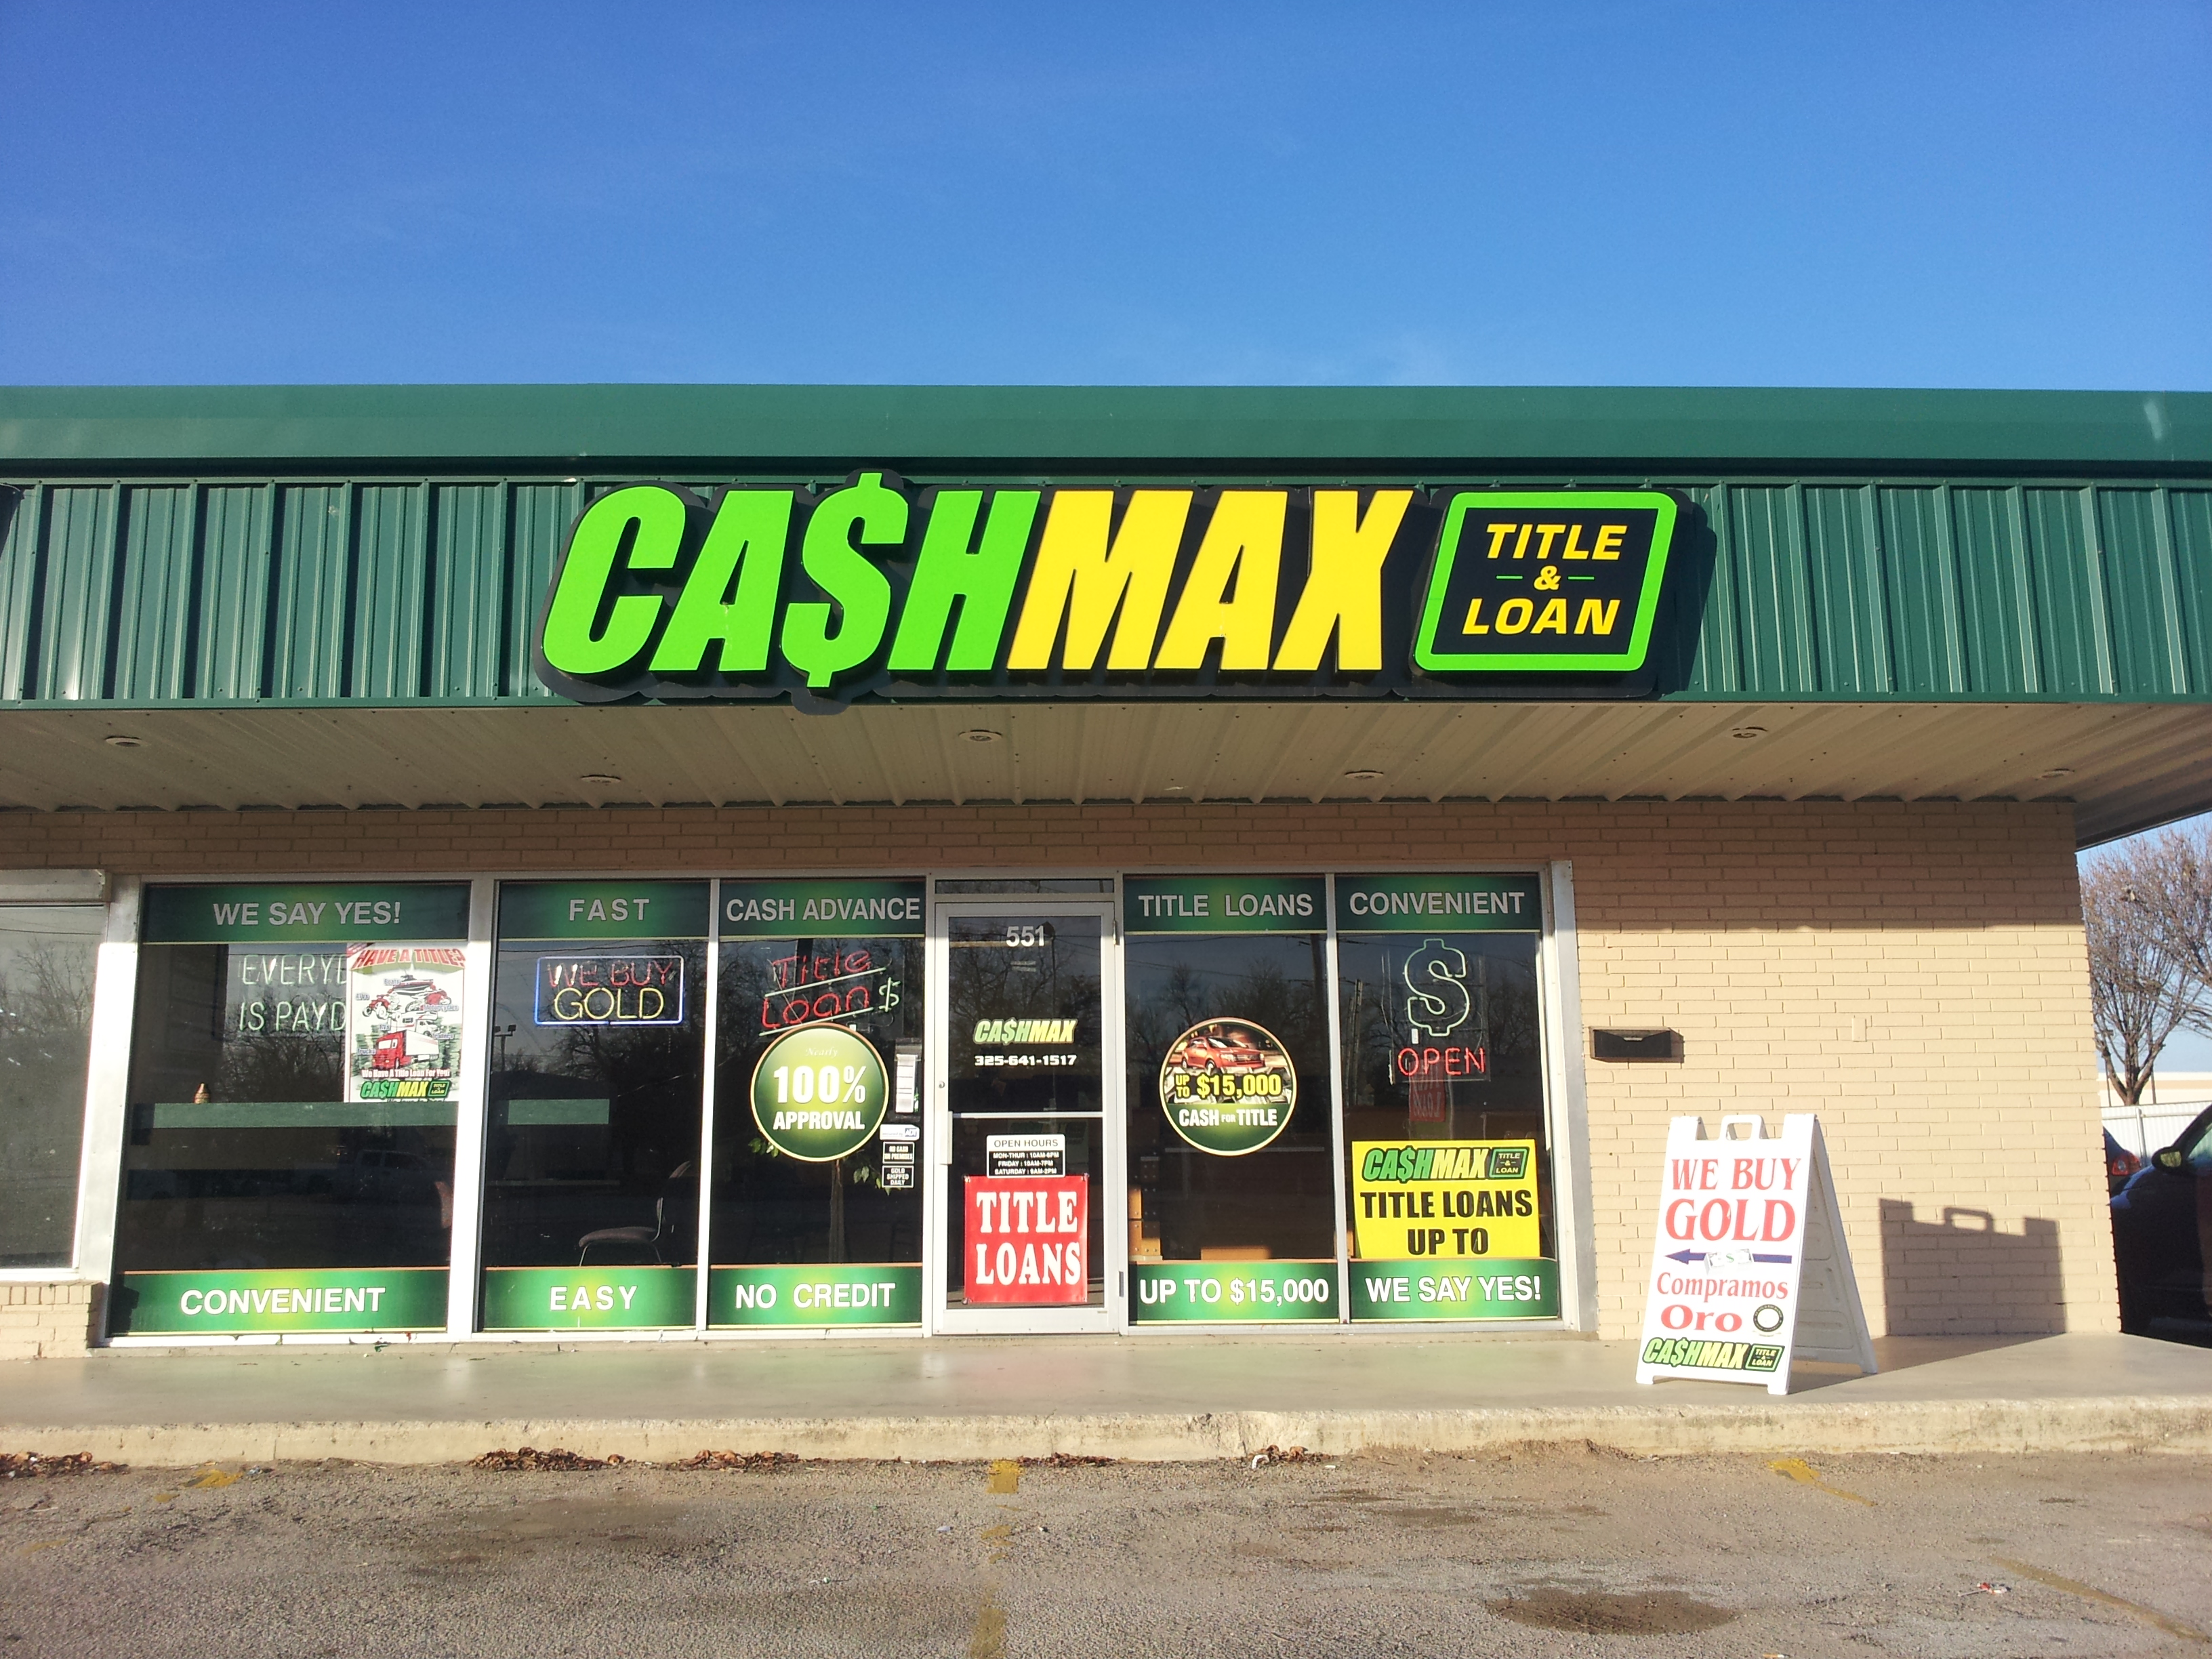 One hundred dollar payday loans photo 6